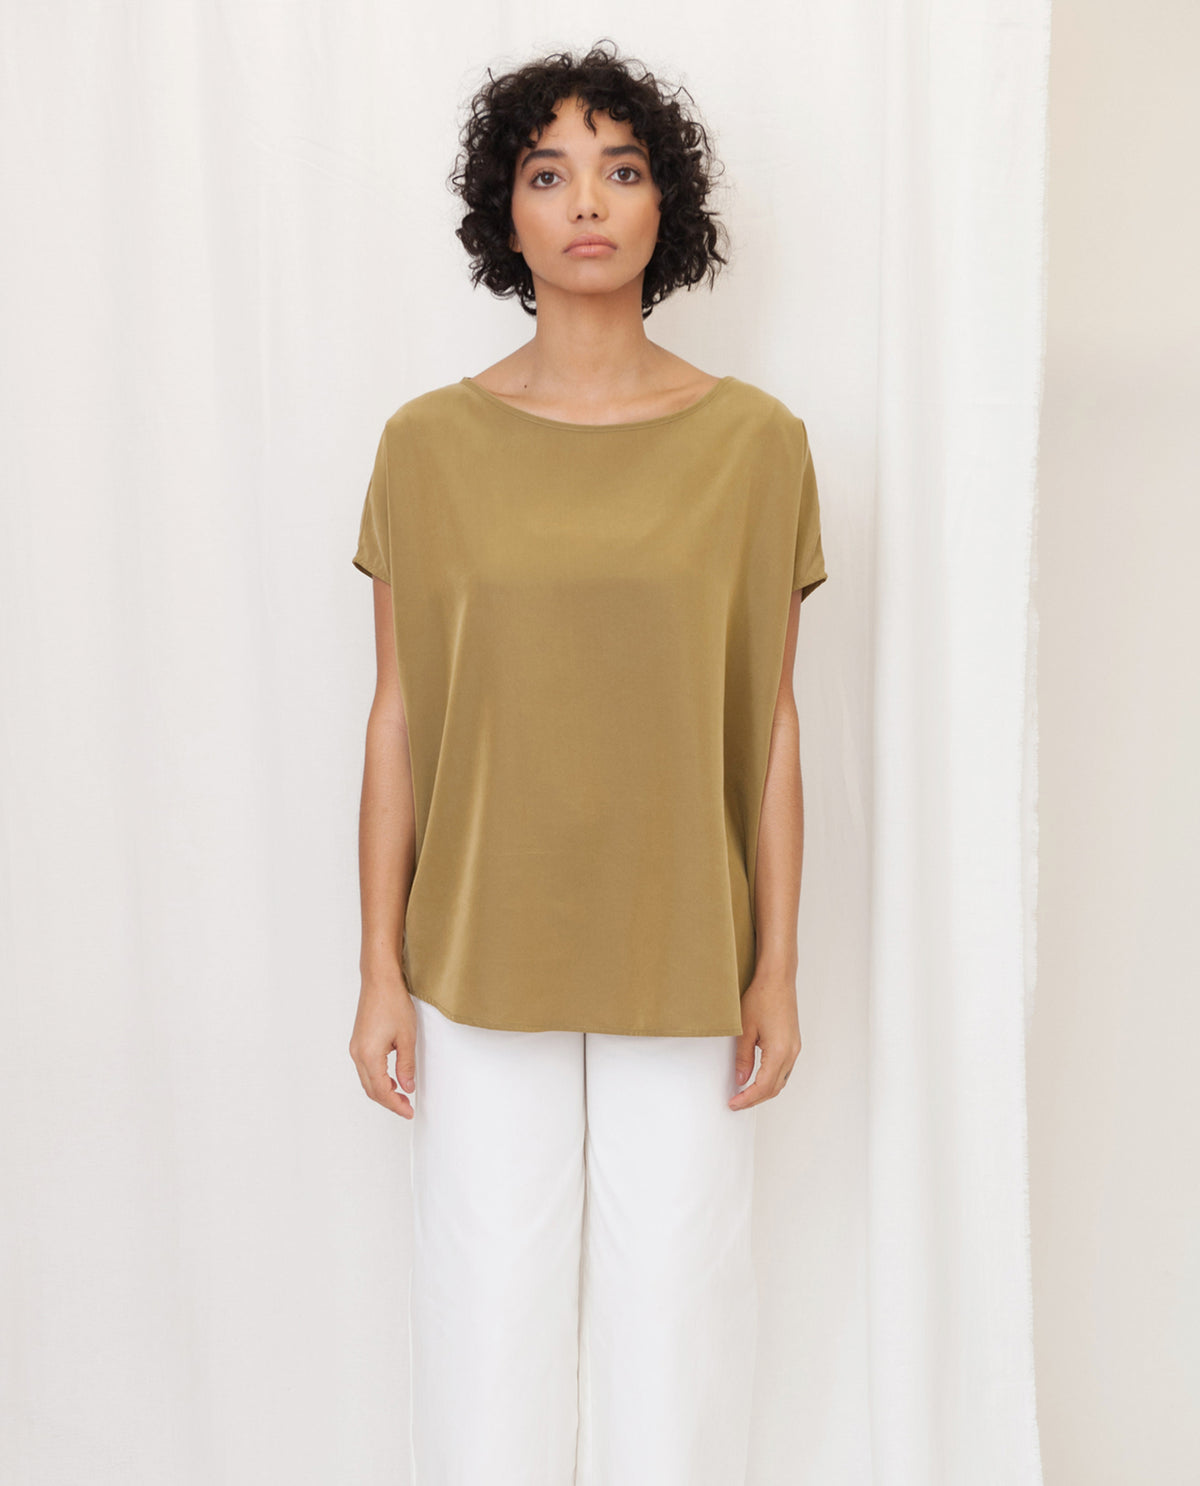 ALINE Modal Top In Khaki